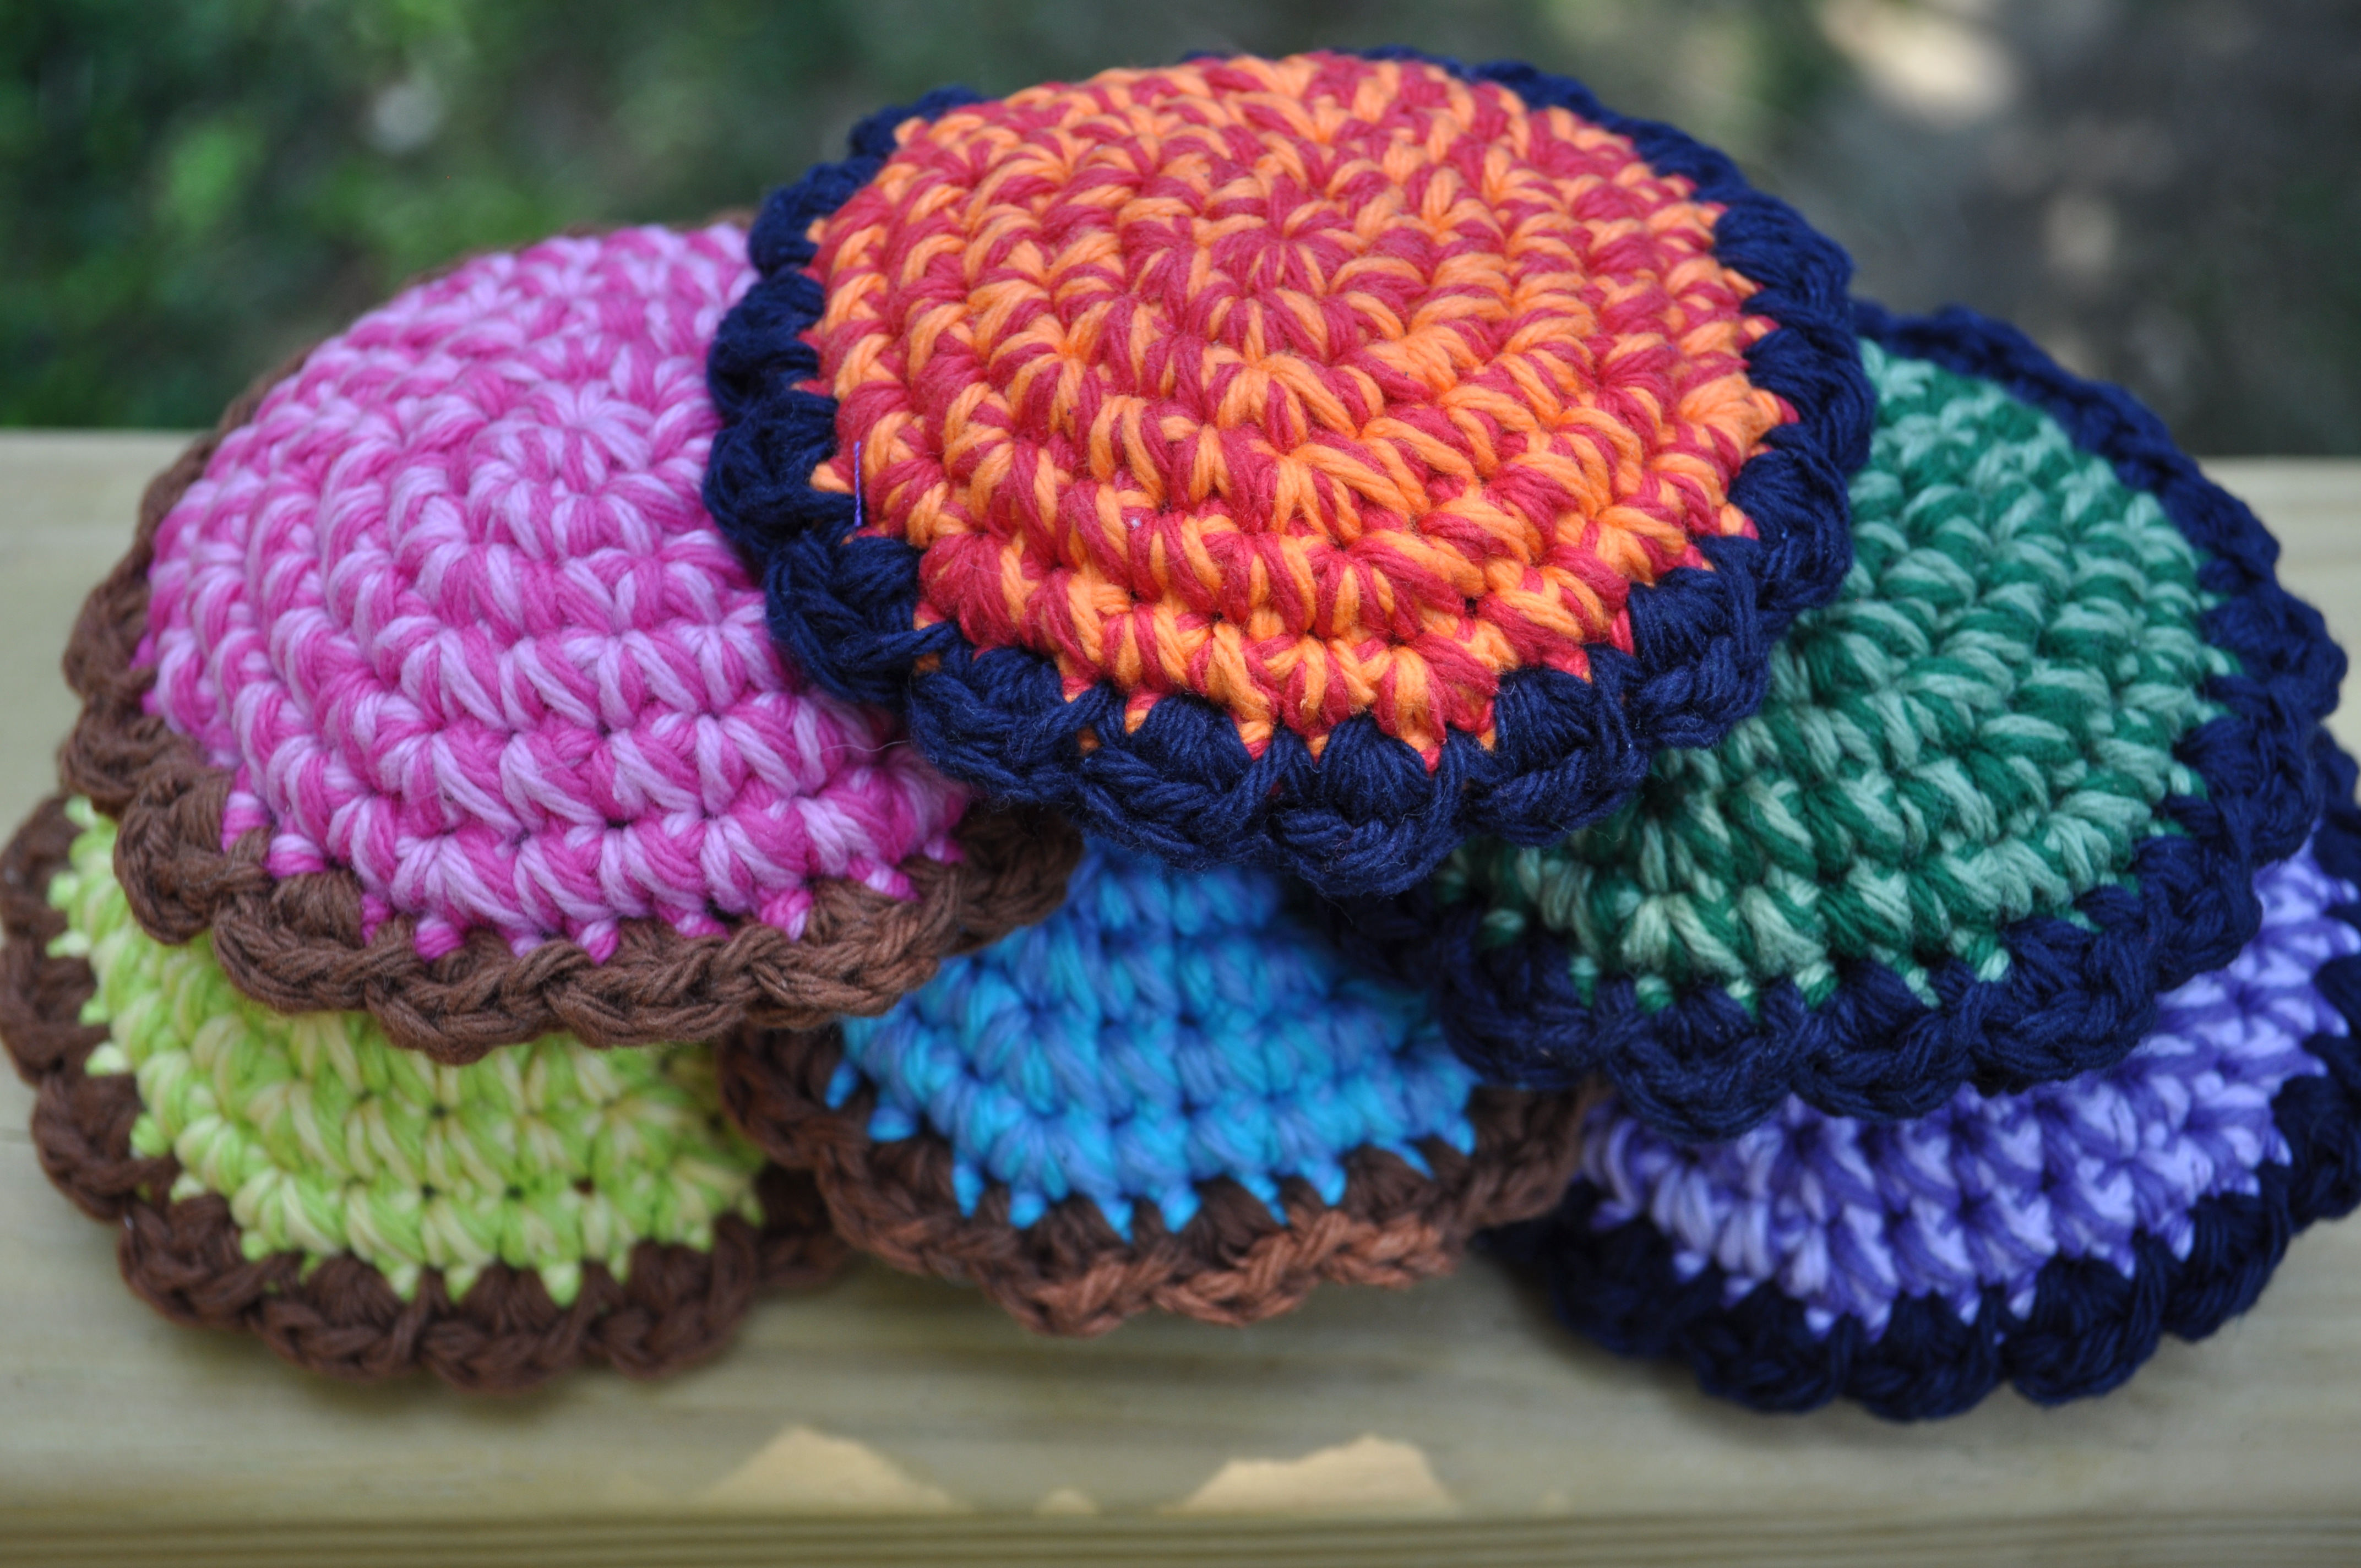 Crochet Bean Bag Tutorial : Super Fun Crochet Bean Bags! Turtleweenies